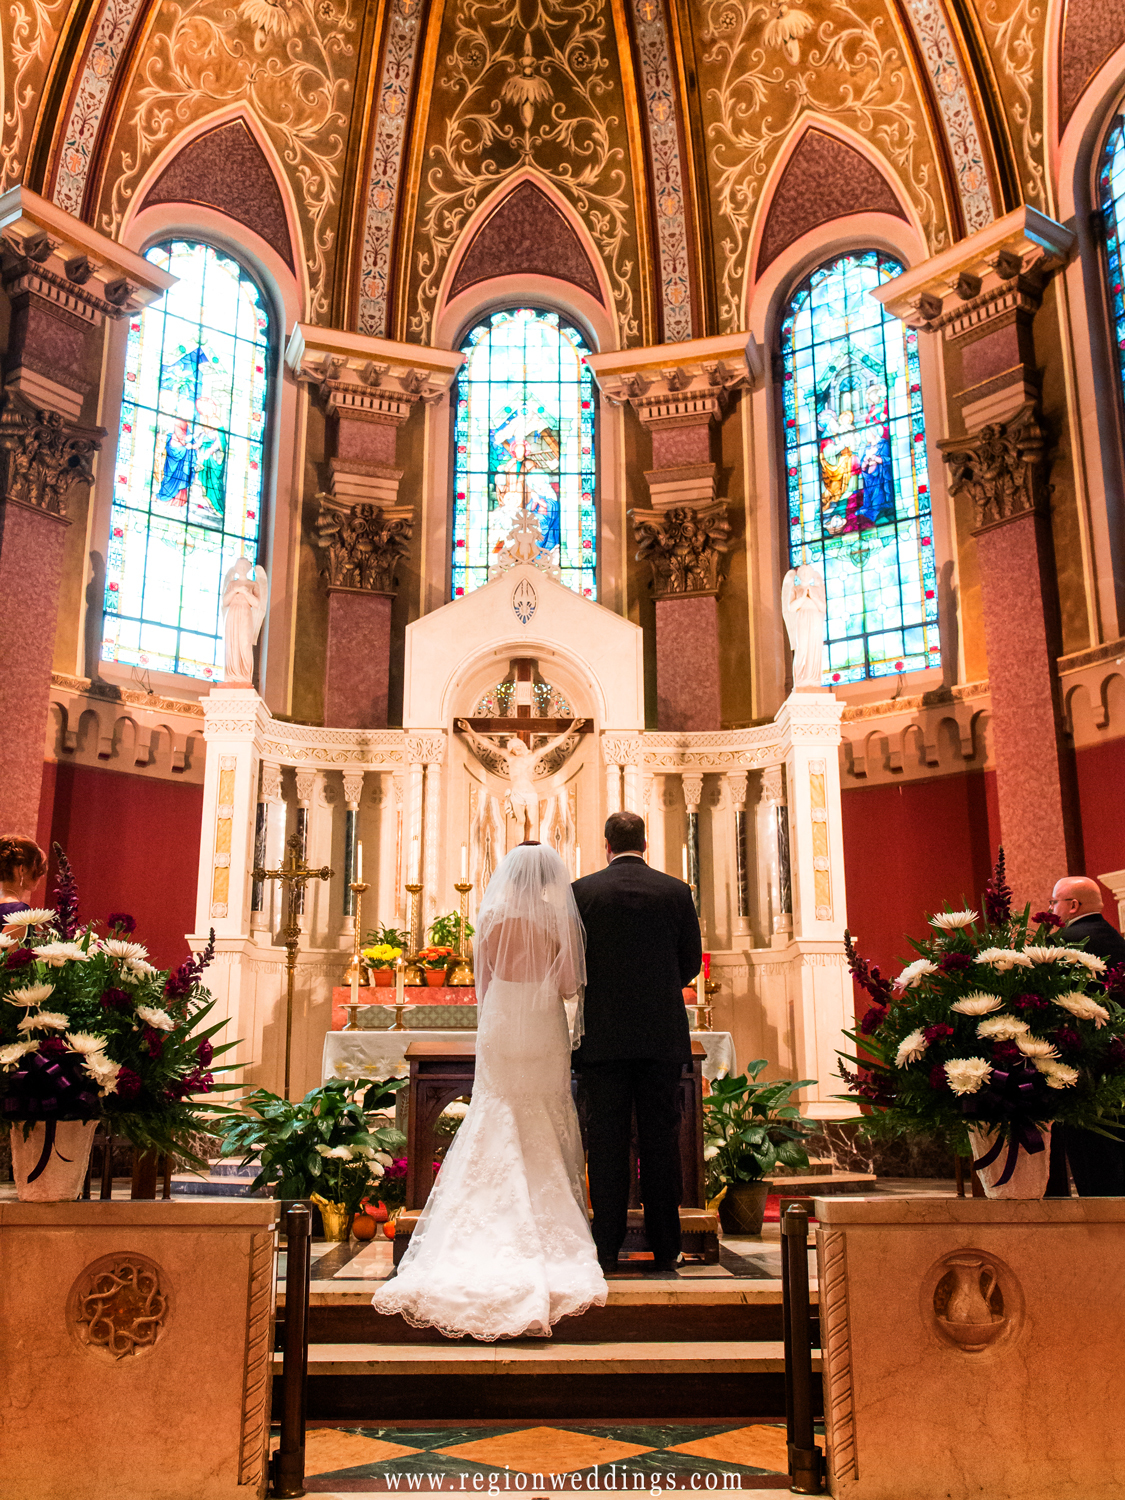 The bride and groom pray during their wedding at Saint Andrew's Church.